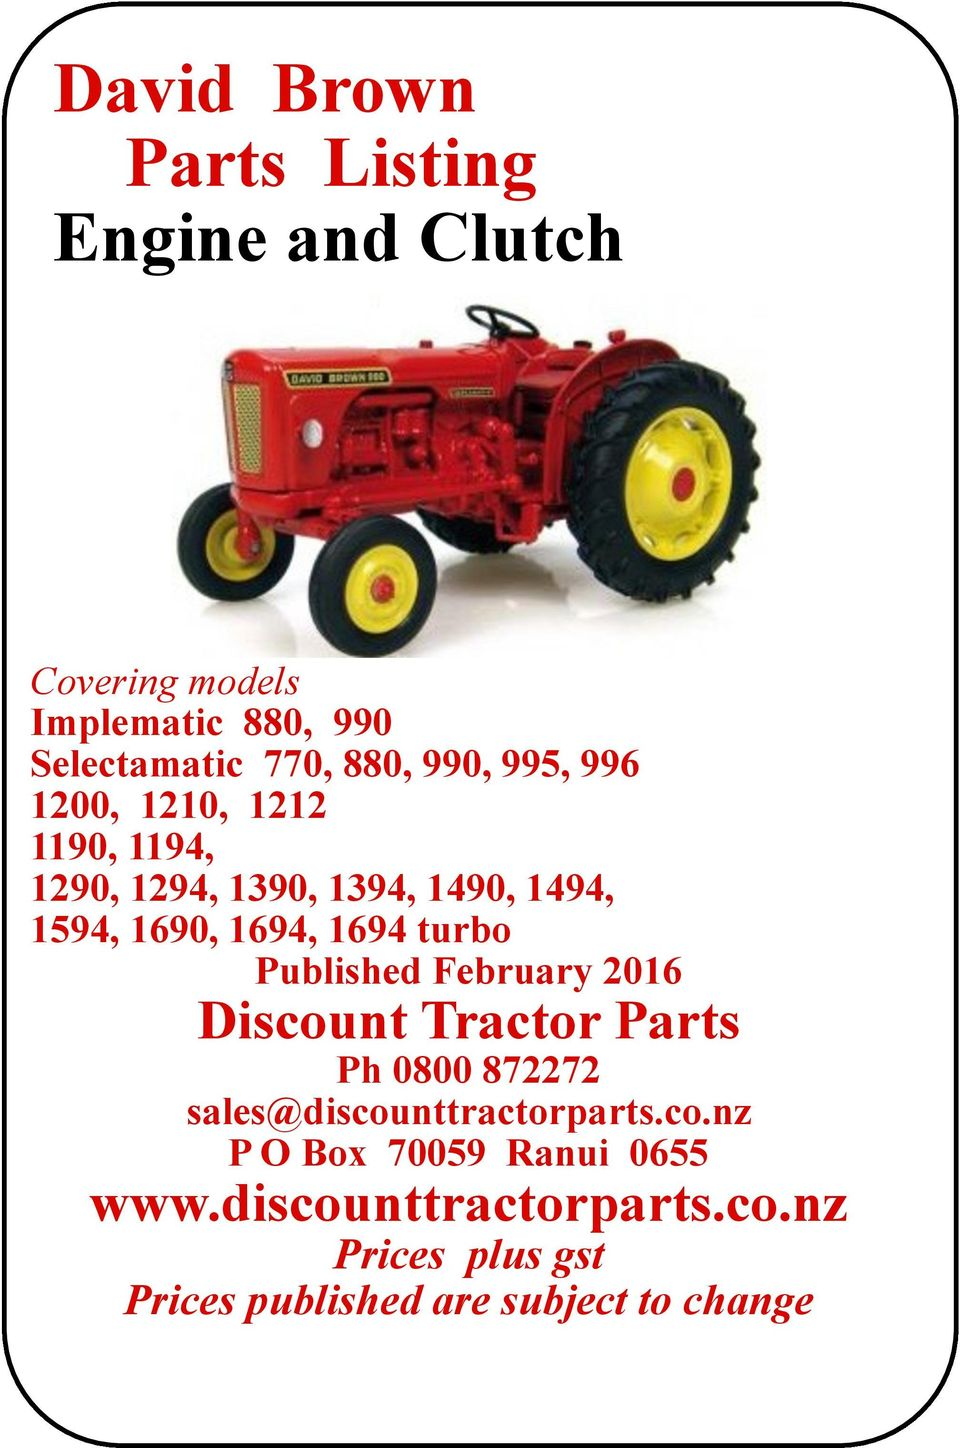 turbo Published February 2016 Discount Tractor Parts Ph 0800 872272 sales@discounttractorparts.co.nz P O Box 70059 Ranui 0655 www.